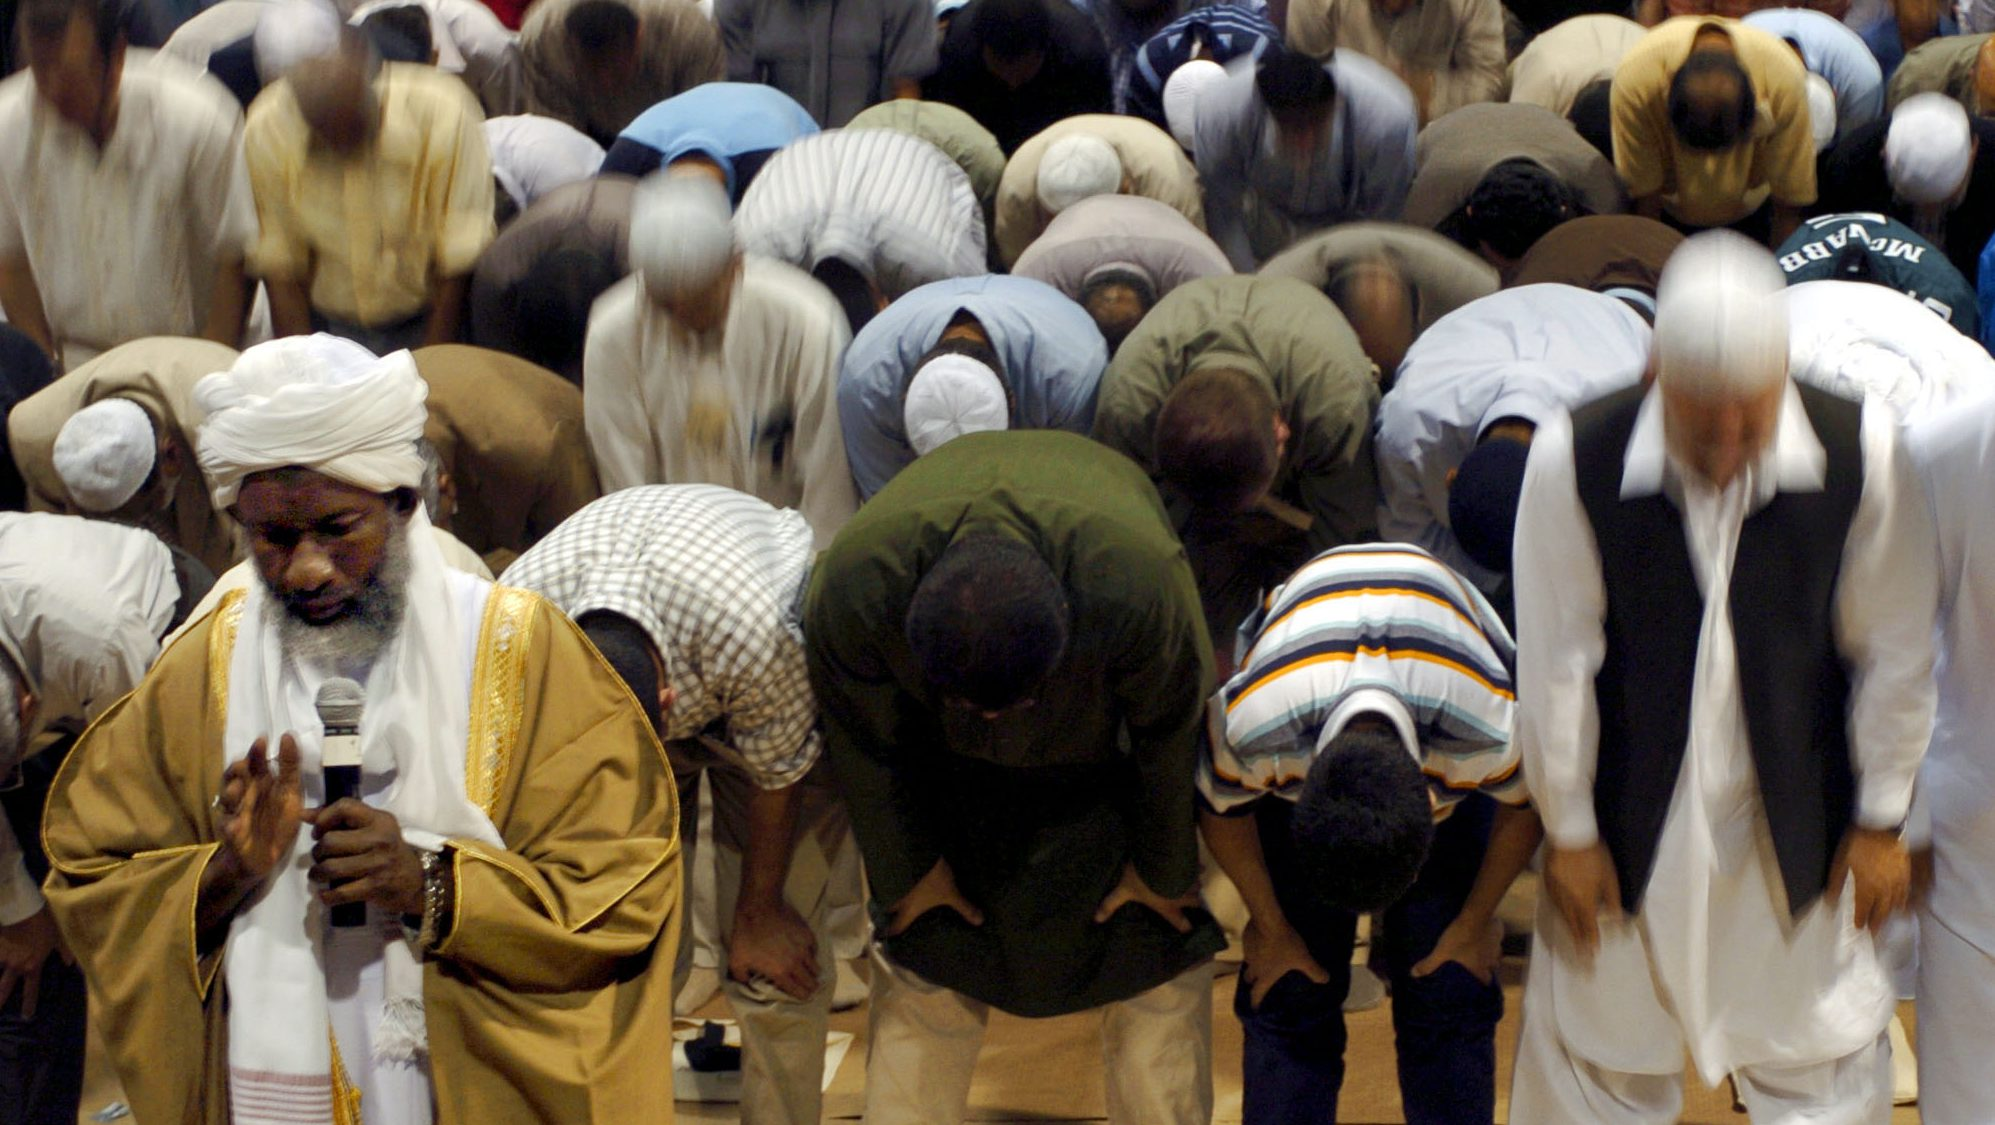 President of the Islamic Society of North America, Muhammad Nur Abdullah, front left, leads Muslims in prayer during the first day of the 41st Annual ISNA Convention Friday, Sept. 3, 2004, in Rosemont, Ill. (AP Photo/Jeff Roberson)